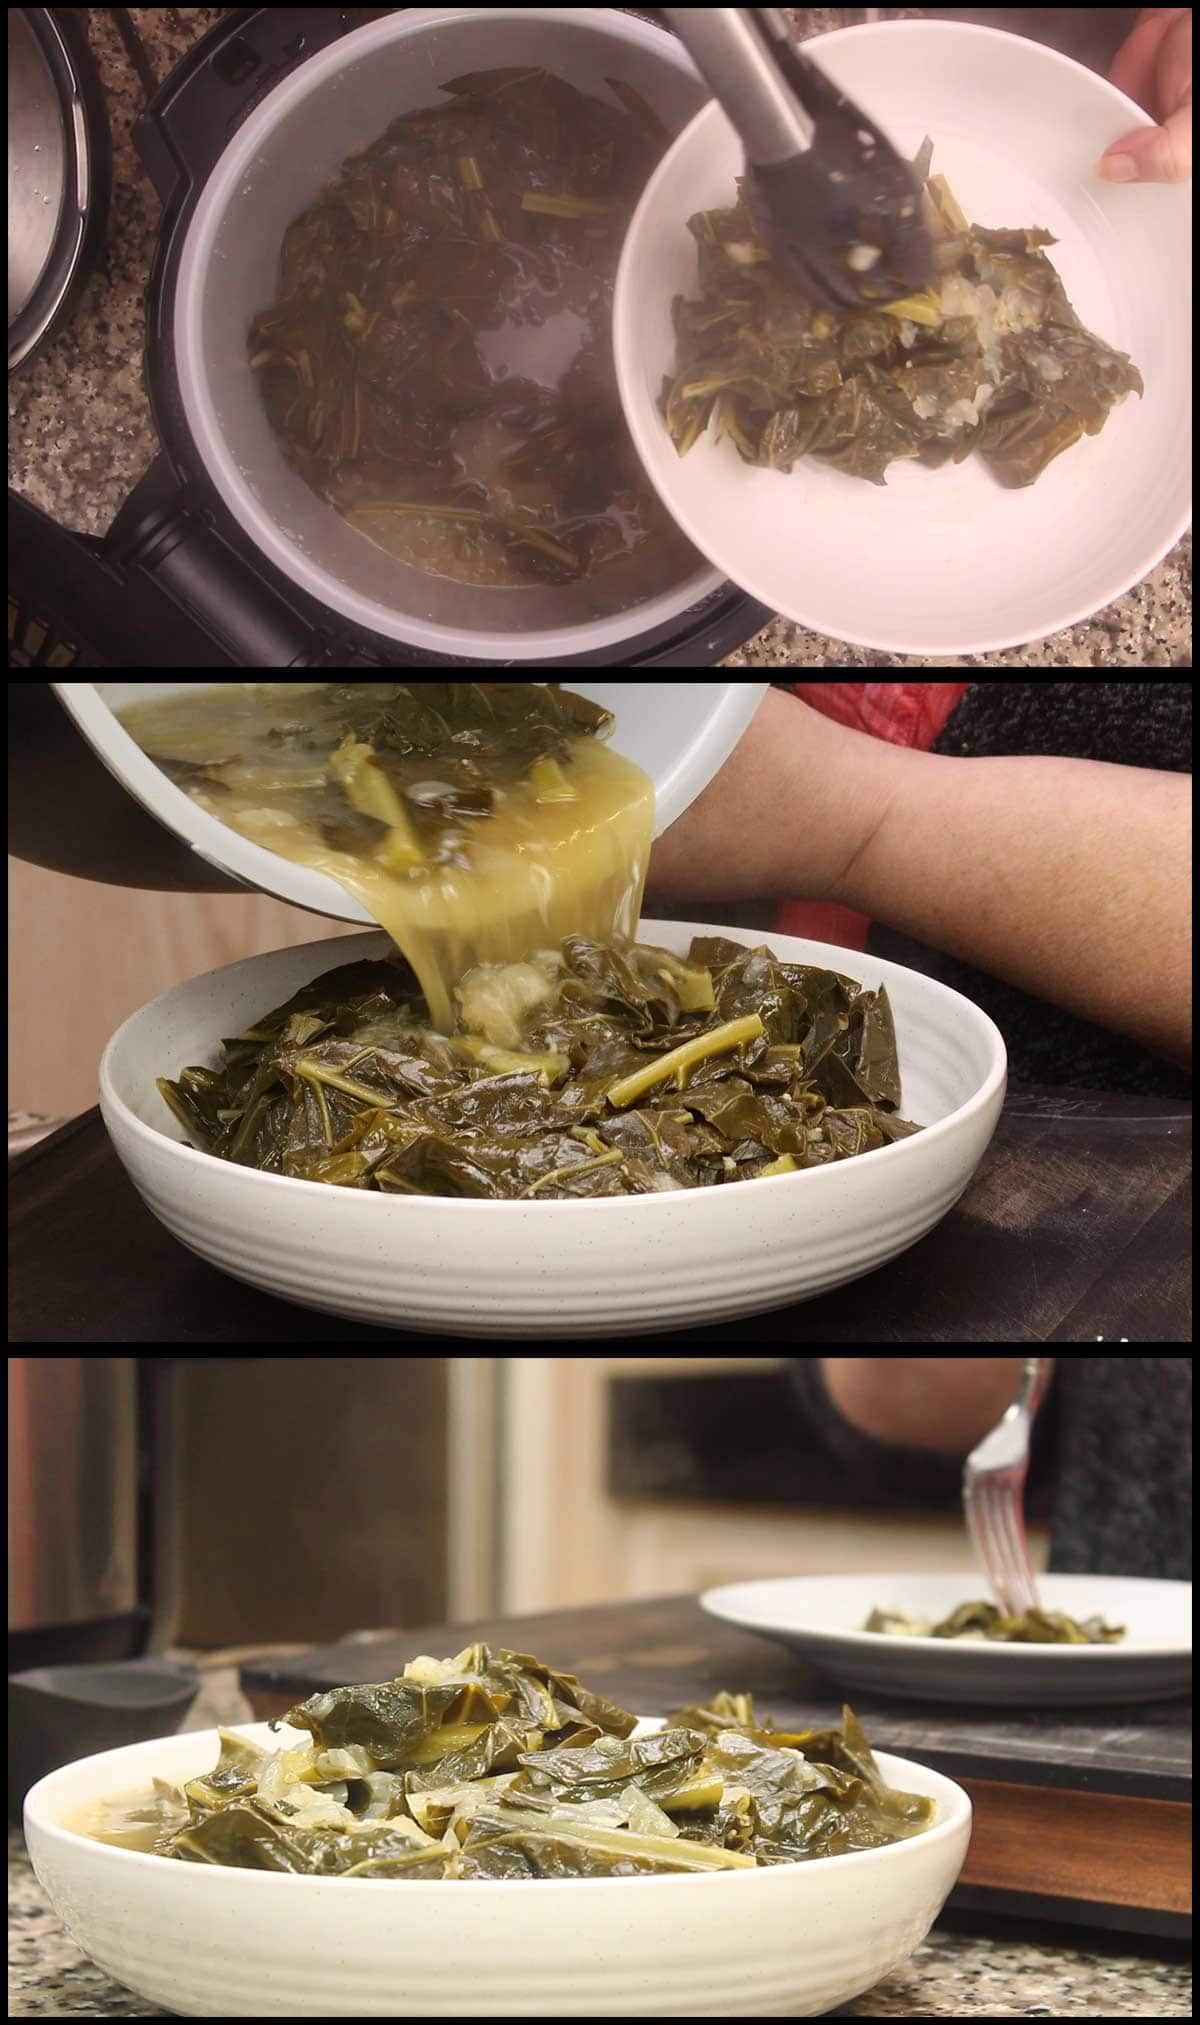 putting collards into a serving bowl and p ouring broth over top of them